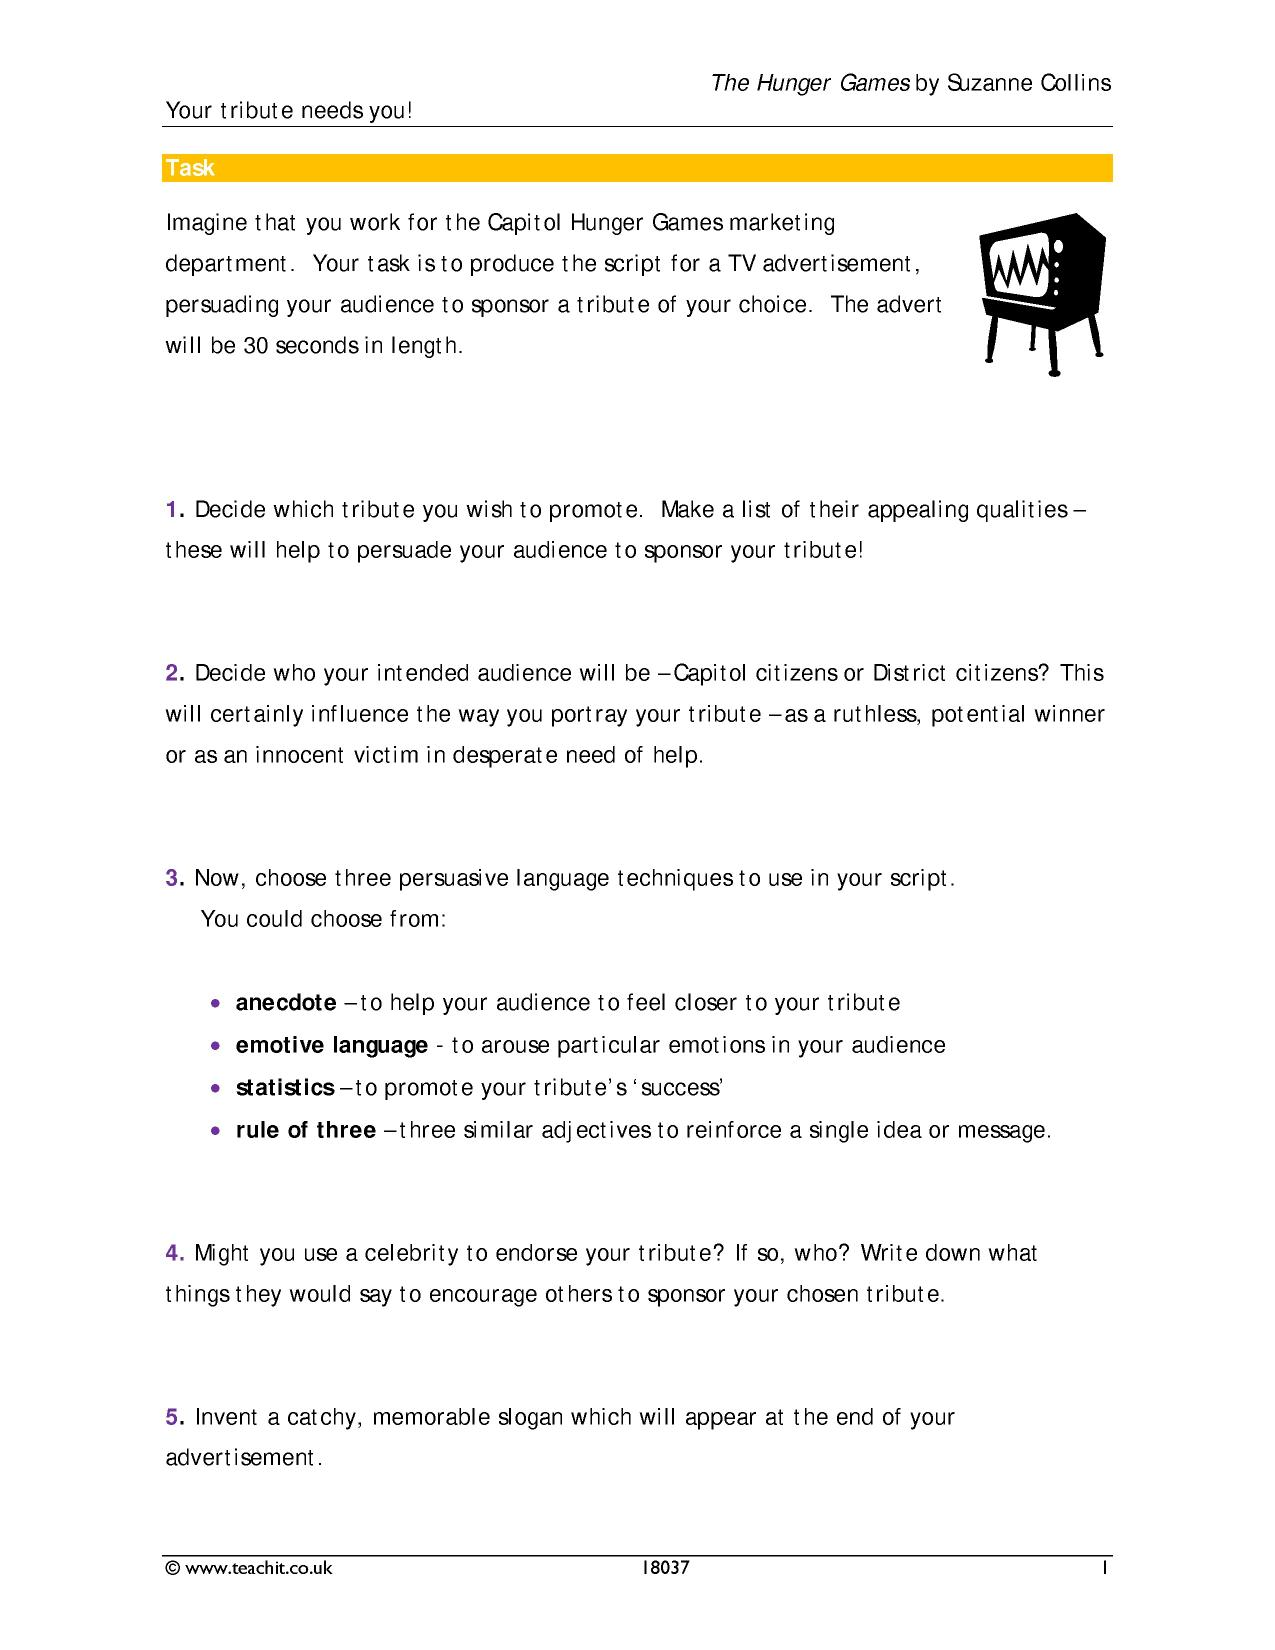 Worksheets Hunger Games Worksheets ks3 the hunger games by suzanne collins teachit english 4 preview